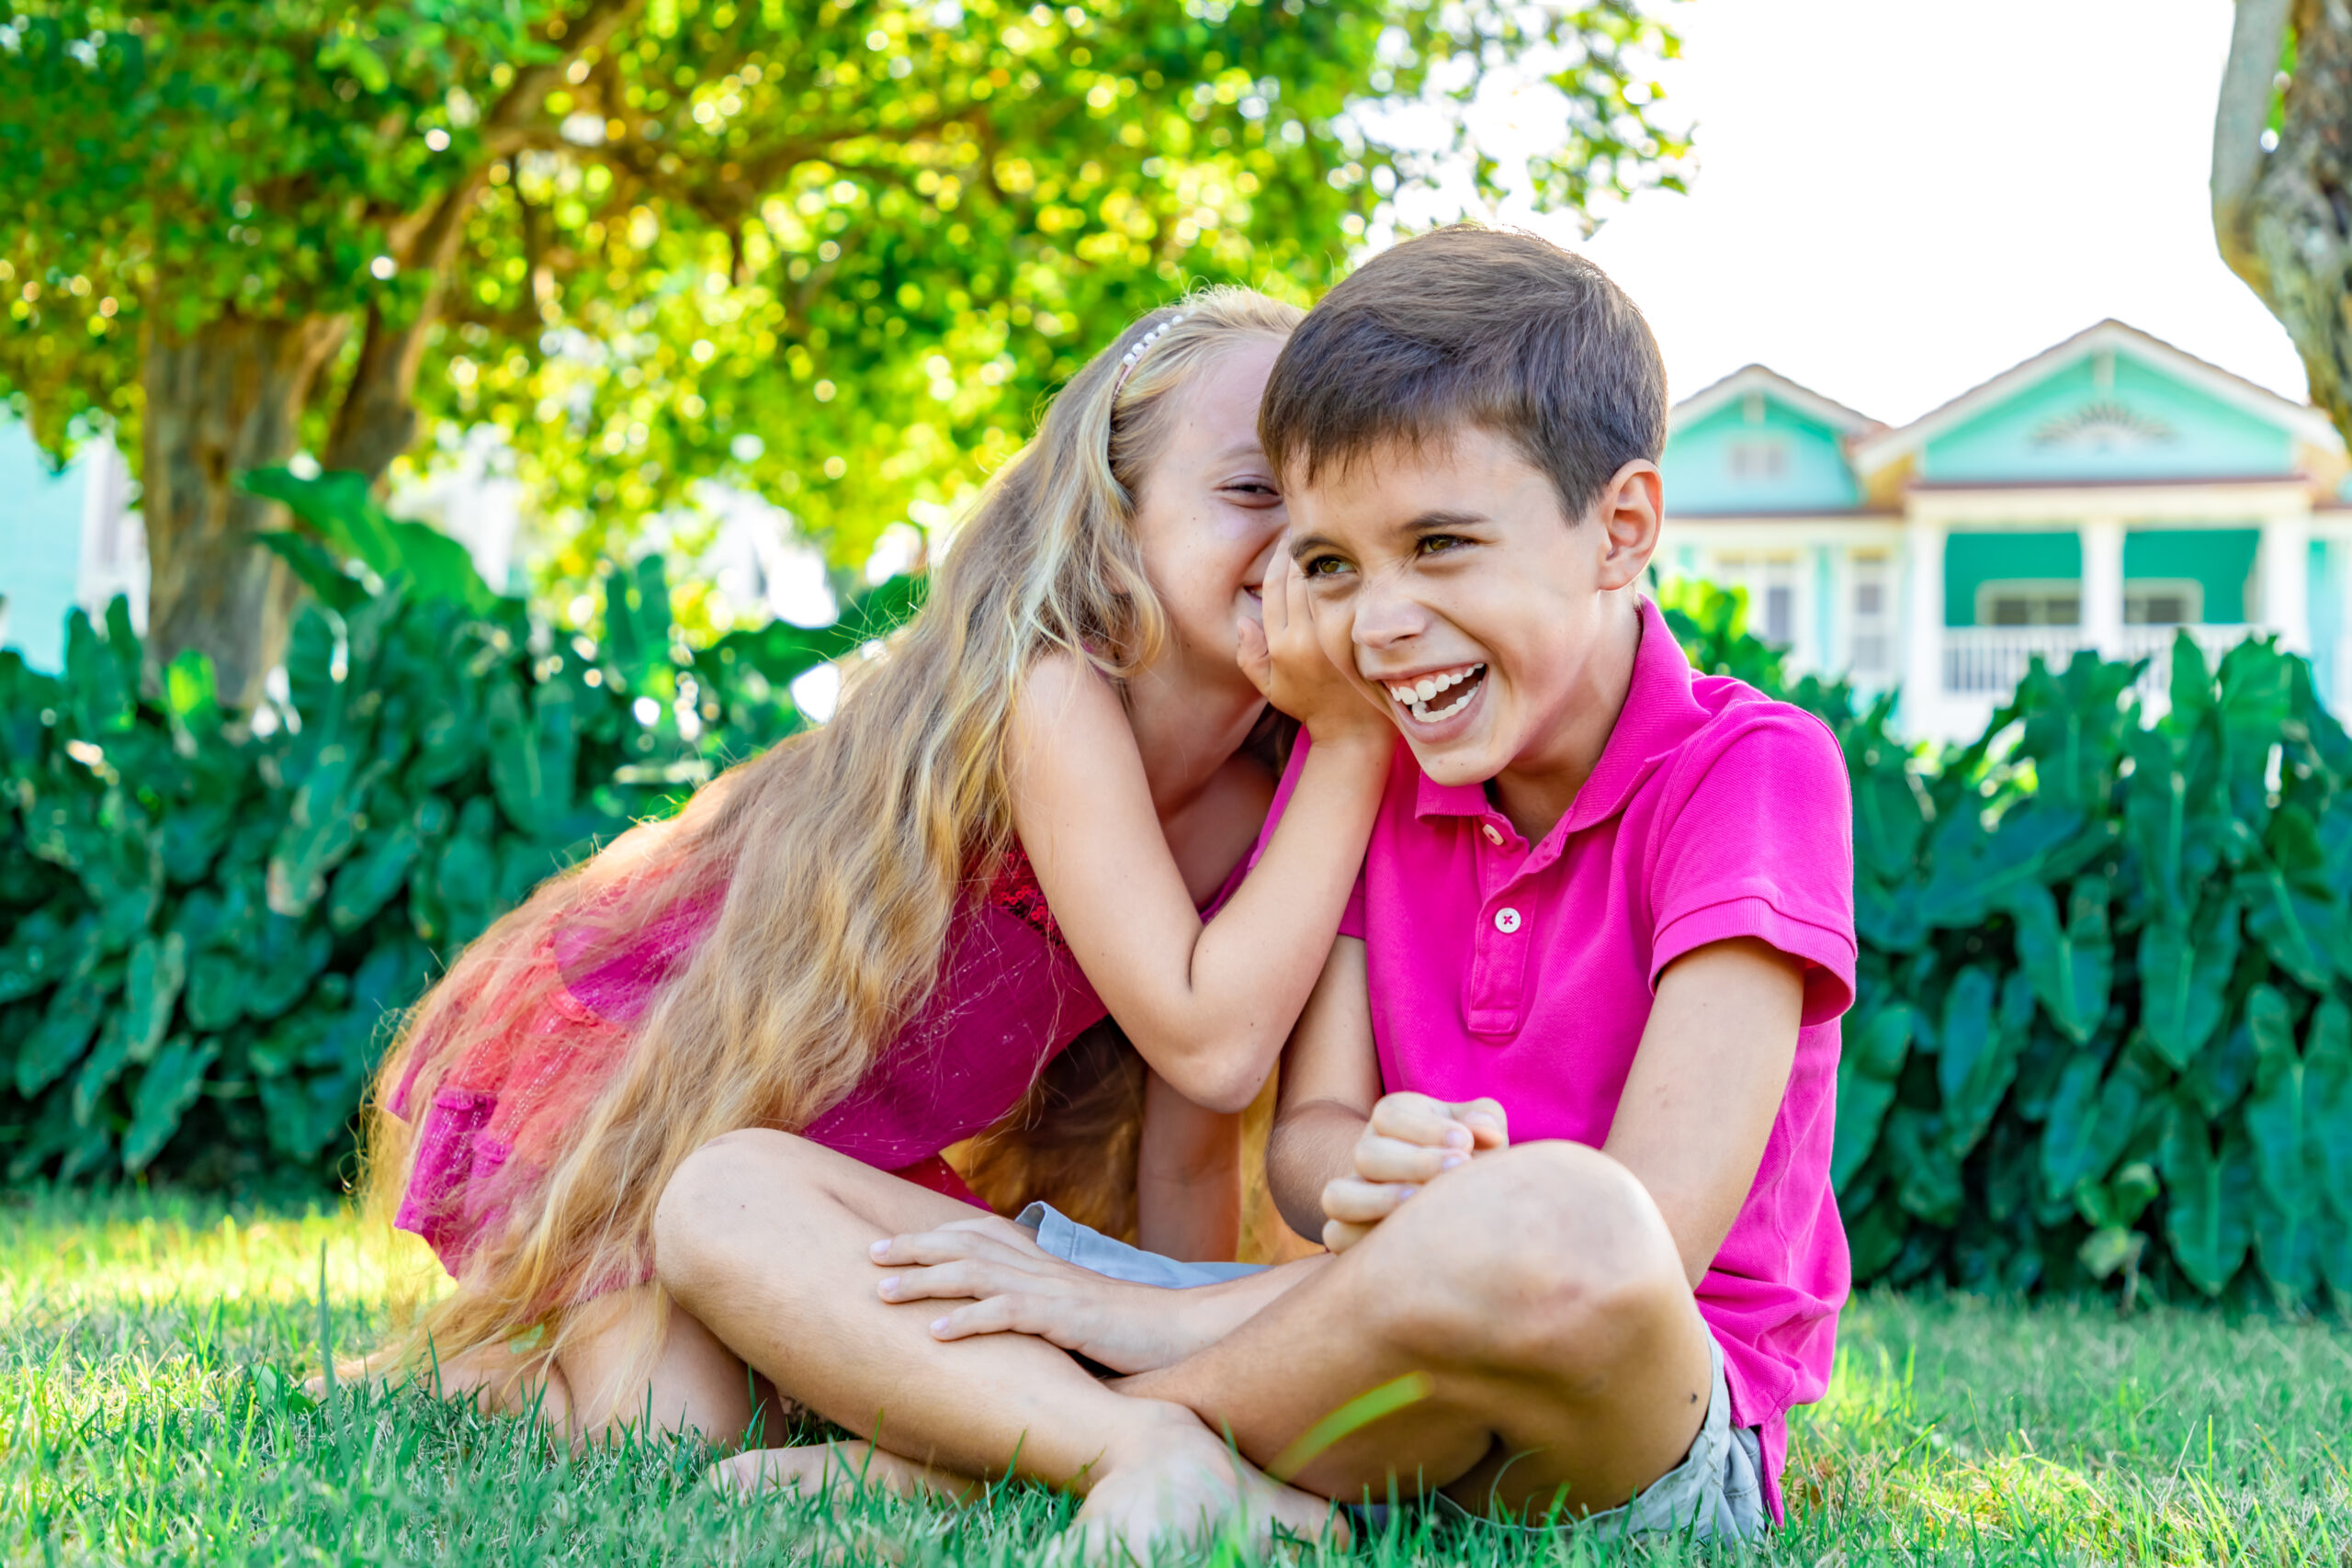 The researchers found that children are better able to produce humor when they have higher levels of general knowledge and verbal reasoning.